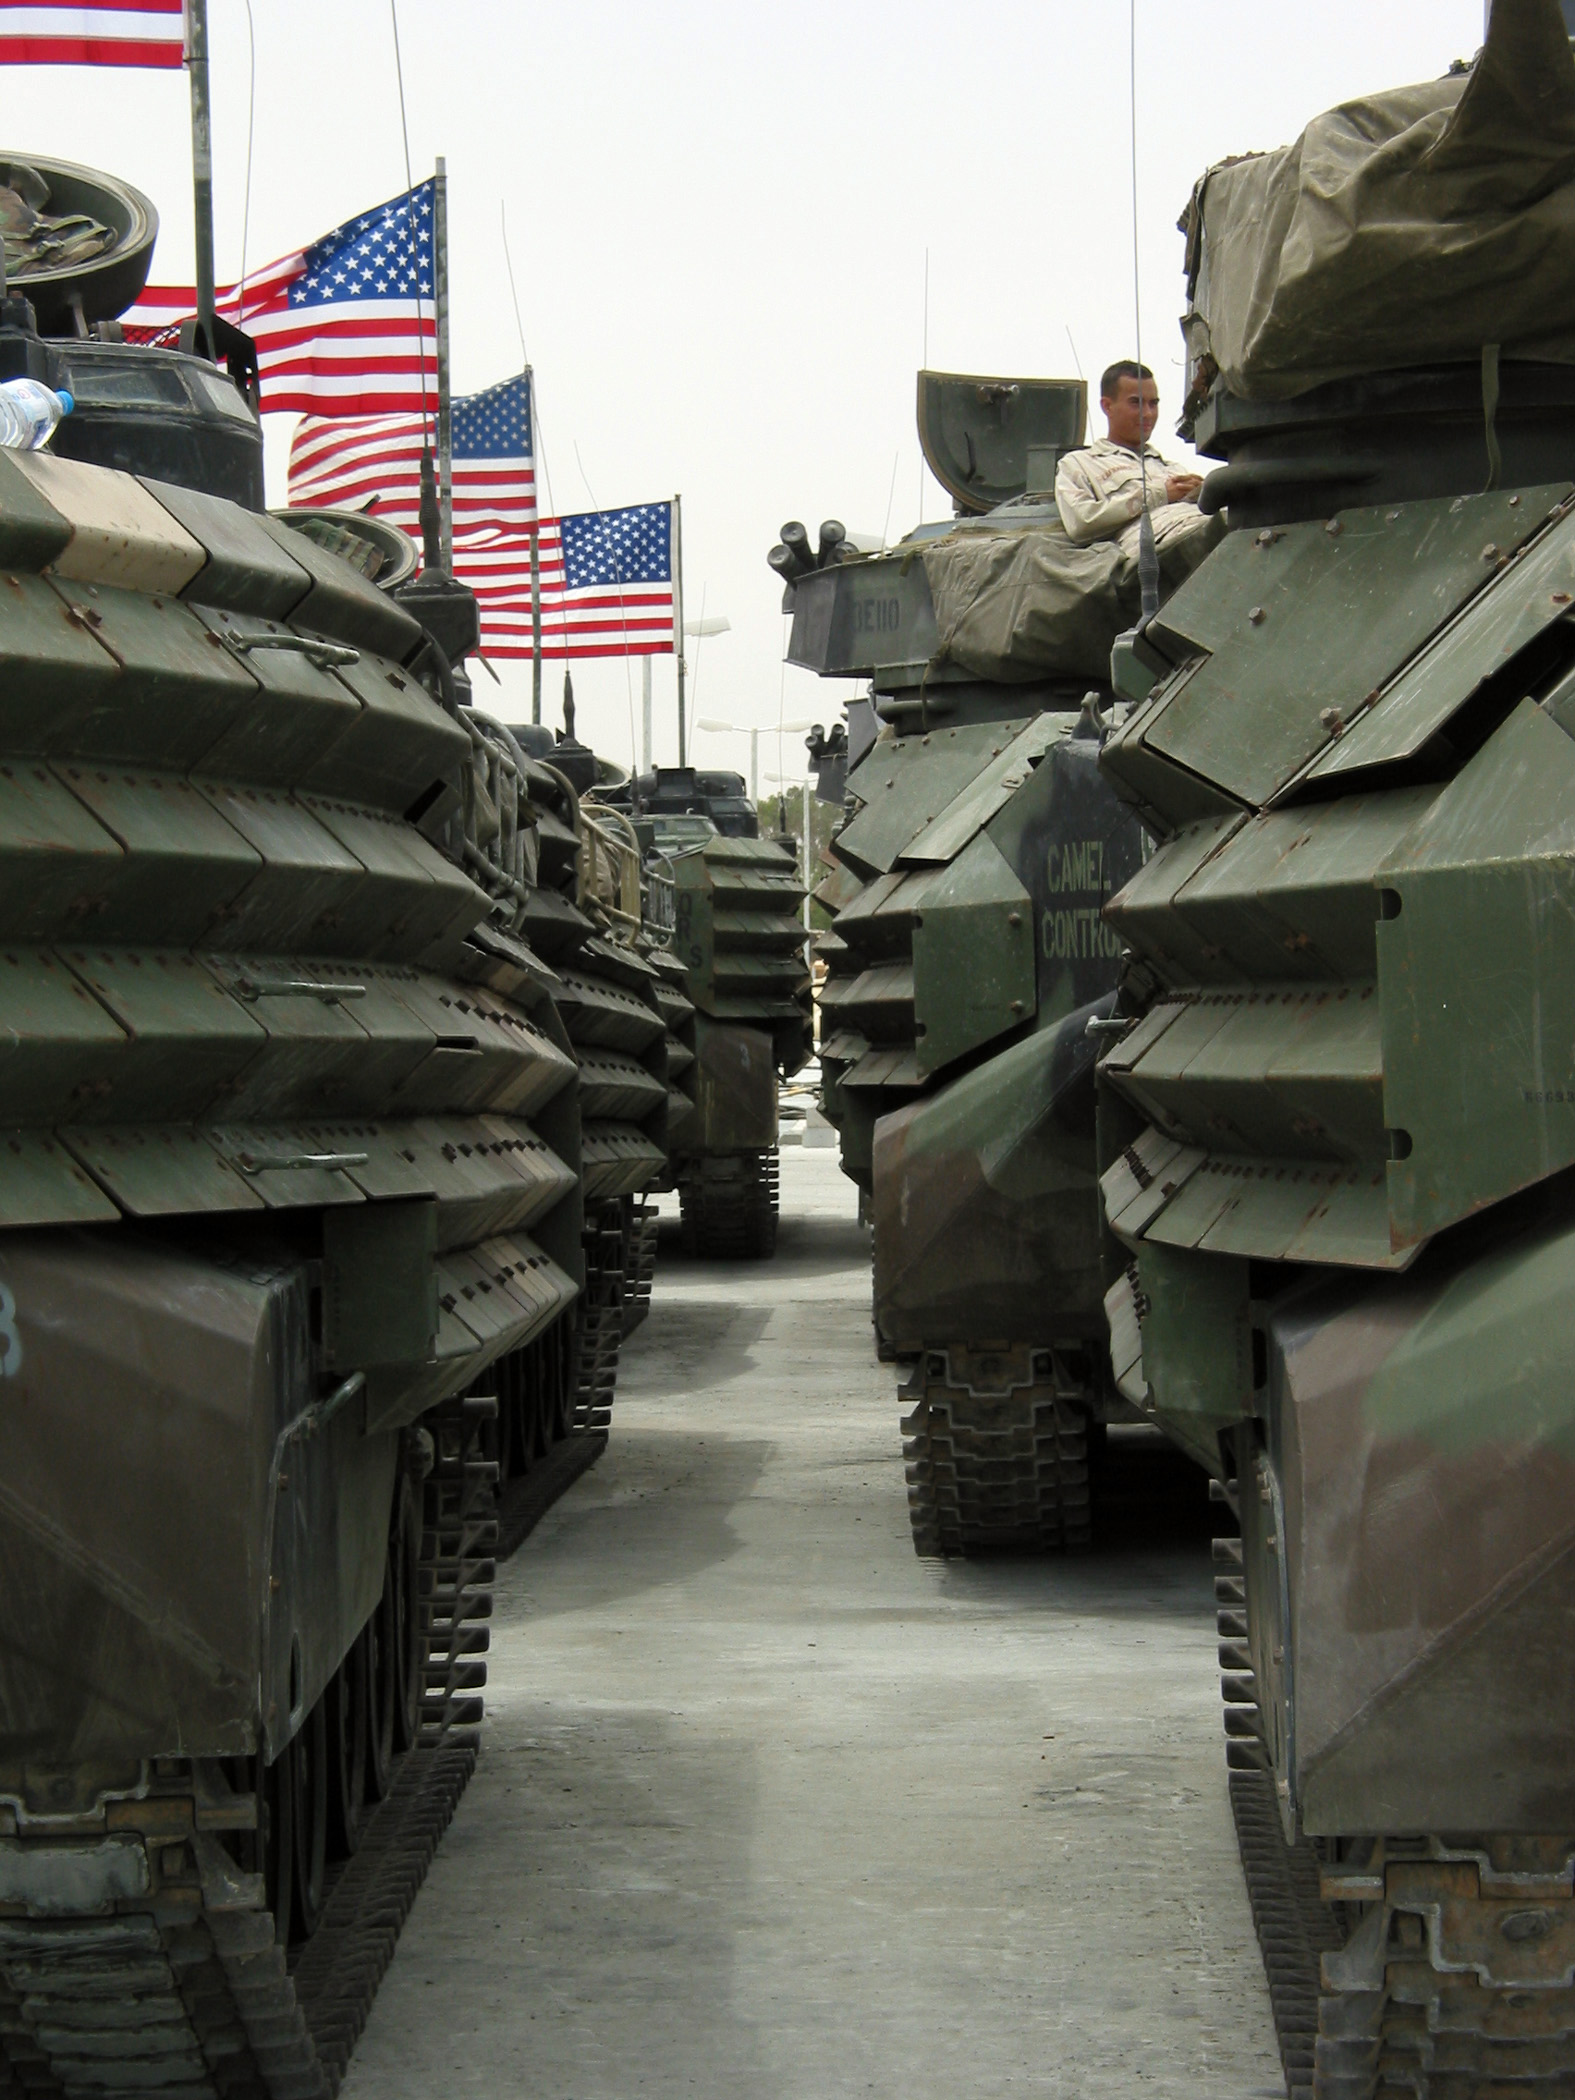 Us Navy N K A Lone Marine Sits Amongst A Sea Of Flags And Amphibious Assault Vehicles Aav At Camp Patriot Kuwait